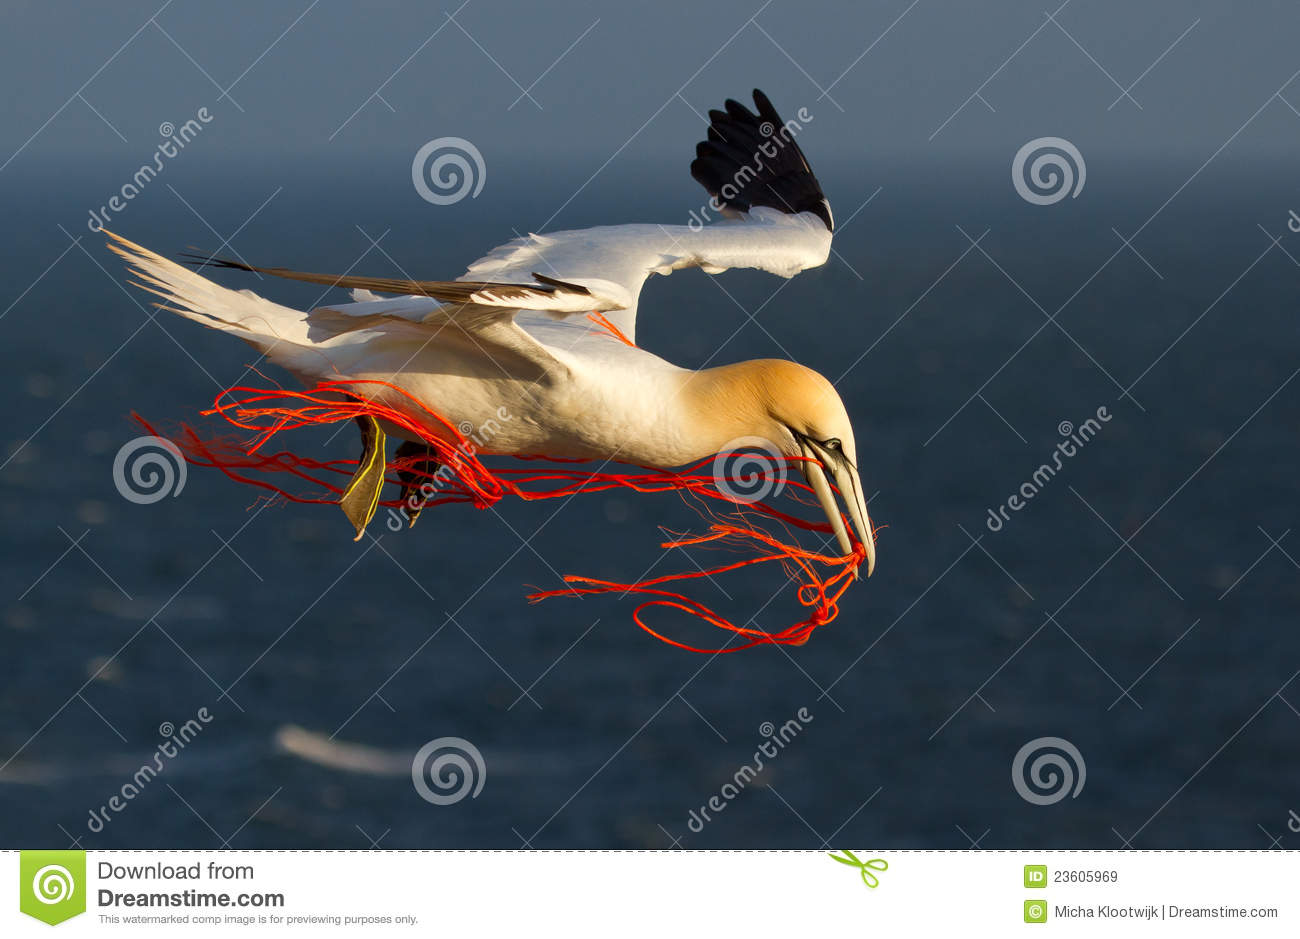 A gannet flying with a orange rope